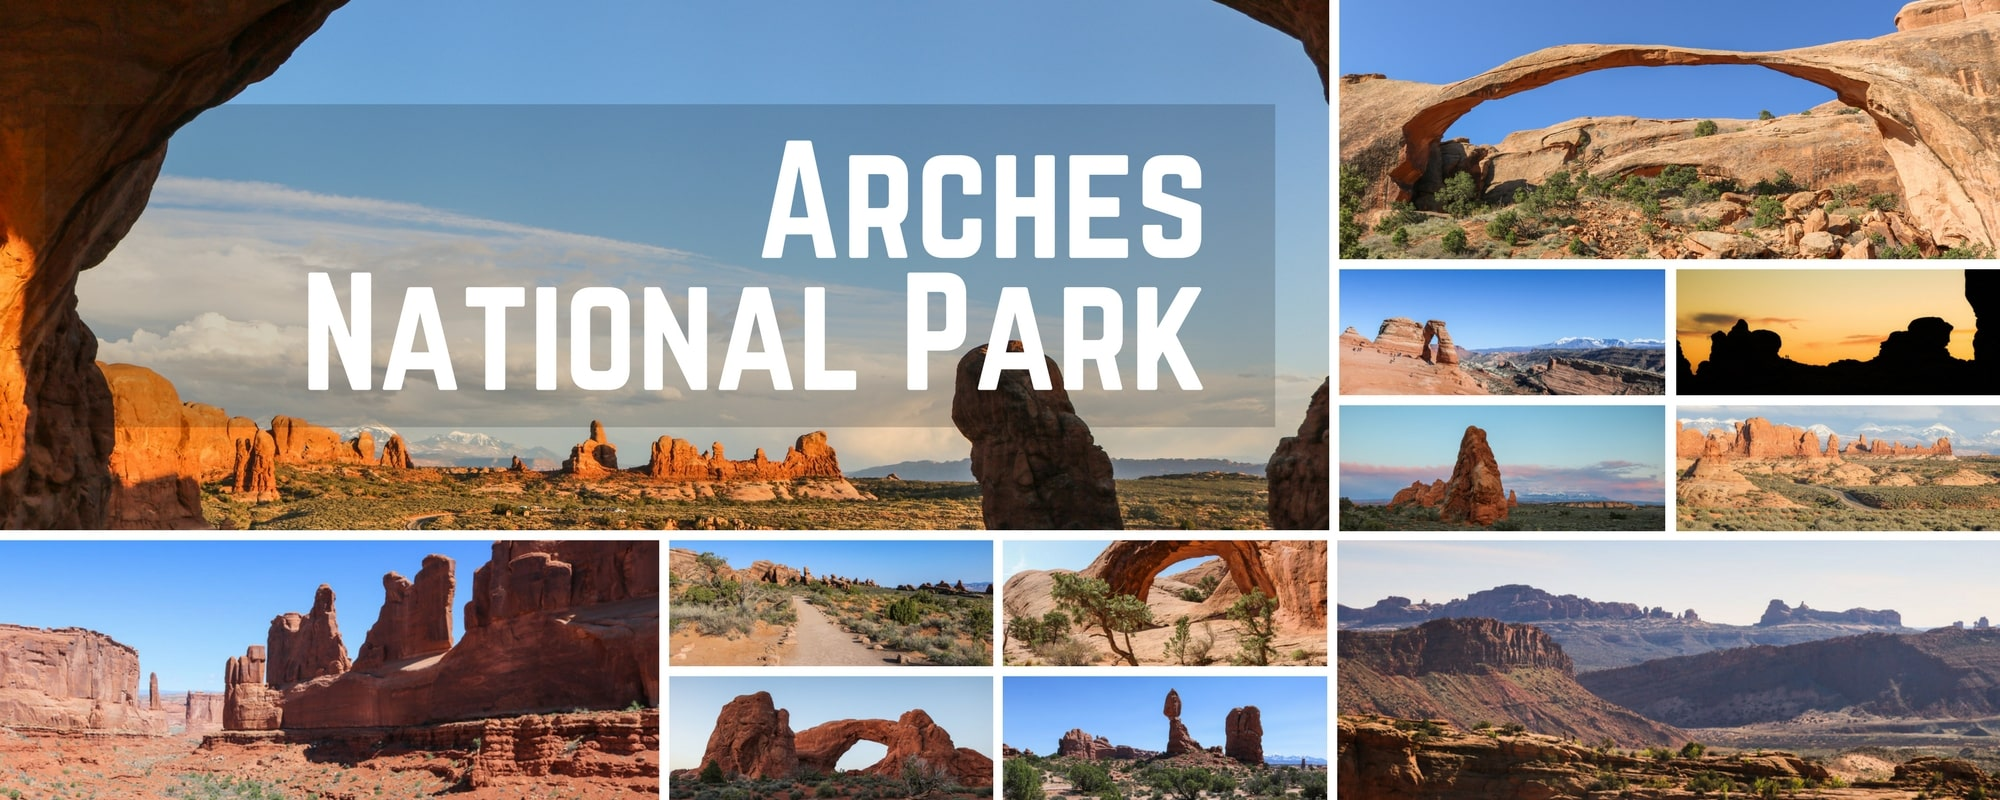 "<span class=""dojodigital_toggle_title"">Arches National Park, Utah</span>"